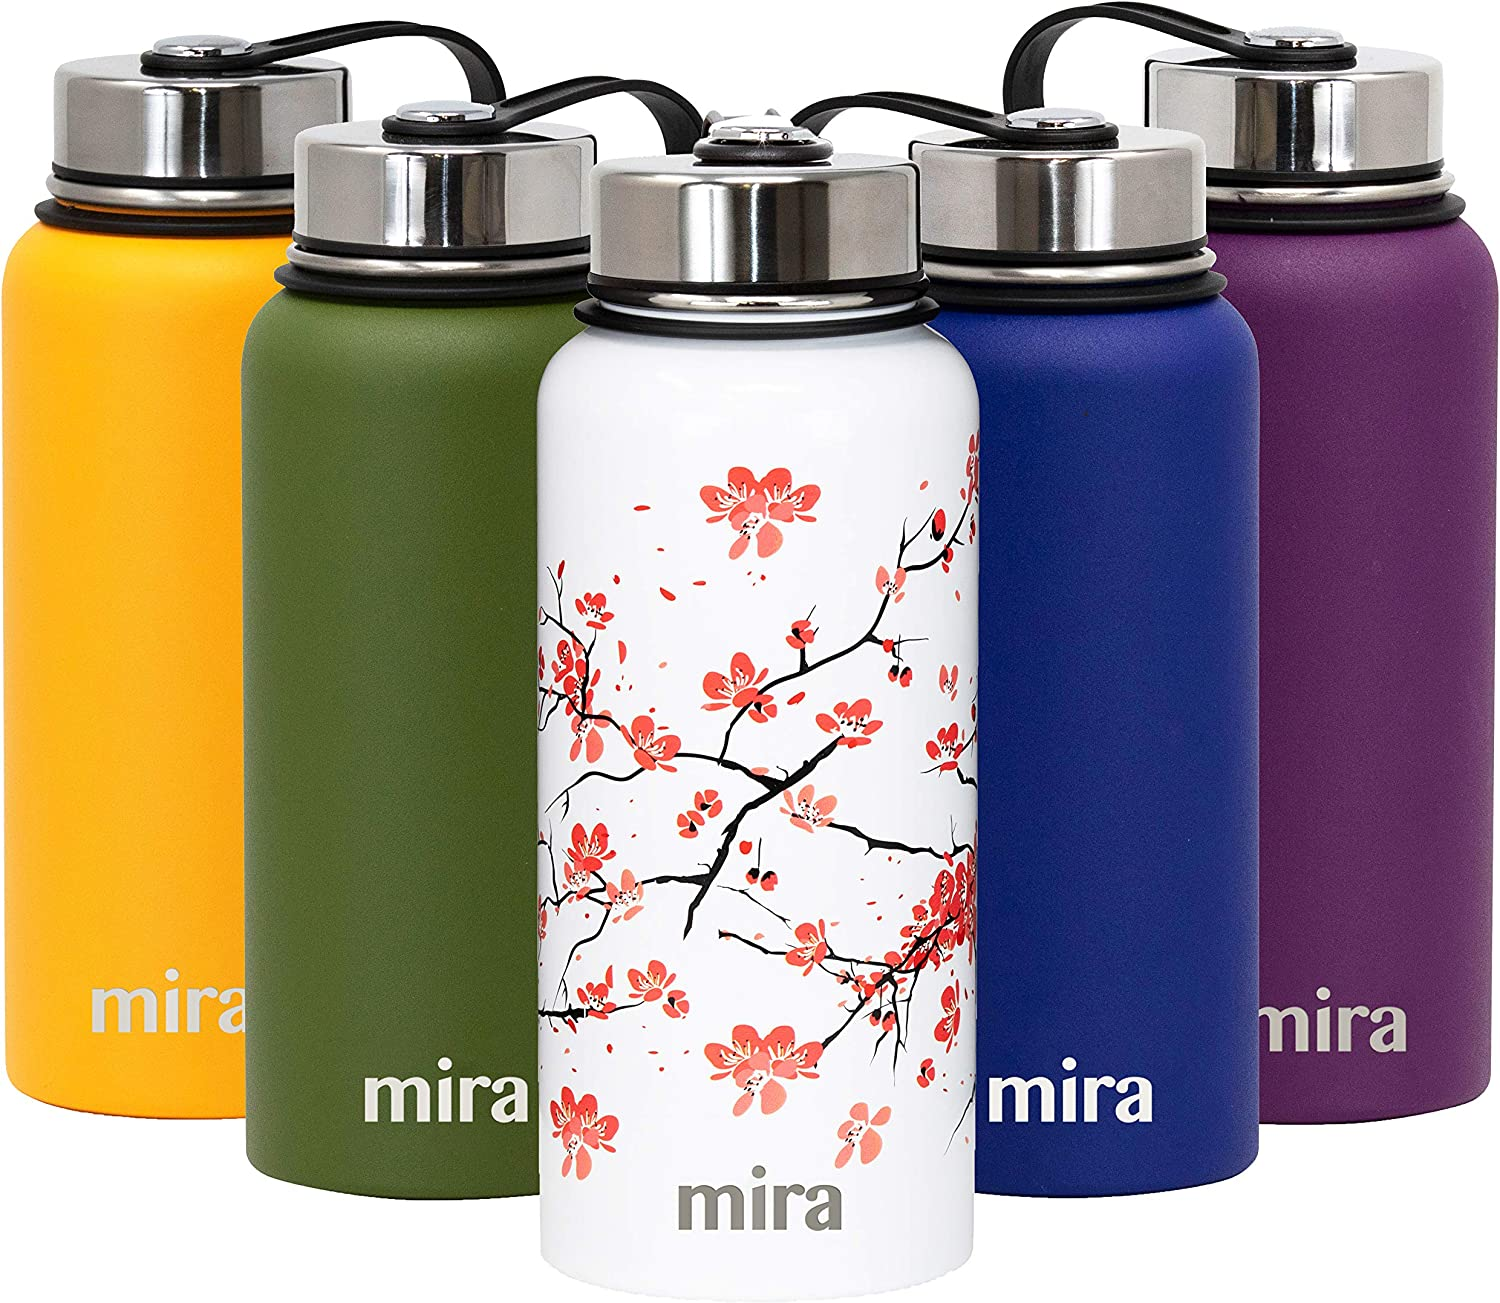 MIRA Insulated 32 oz Water Bottle | Stainless Steel Vacuum Insulated Wide Mouth Thermos Flask | Keeps Water Stay Cold for 24 Hours, Hot for 12 Hours | Metal Bottle BPA-Free Cap | Cherry Blossom